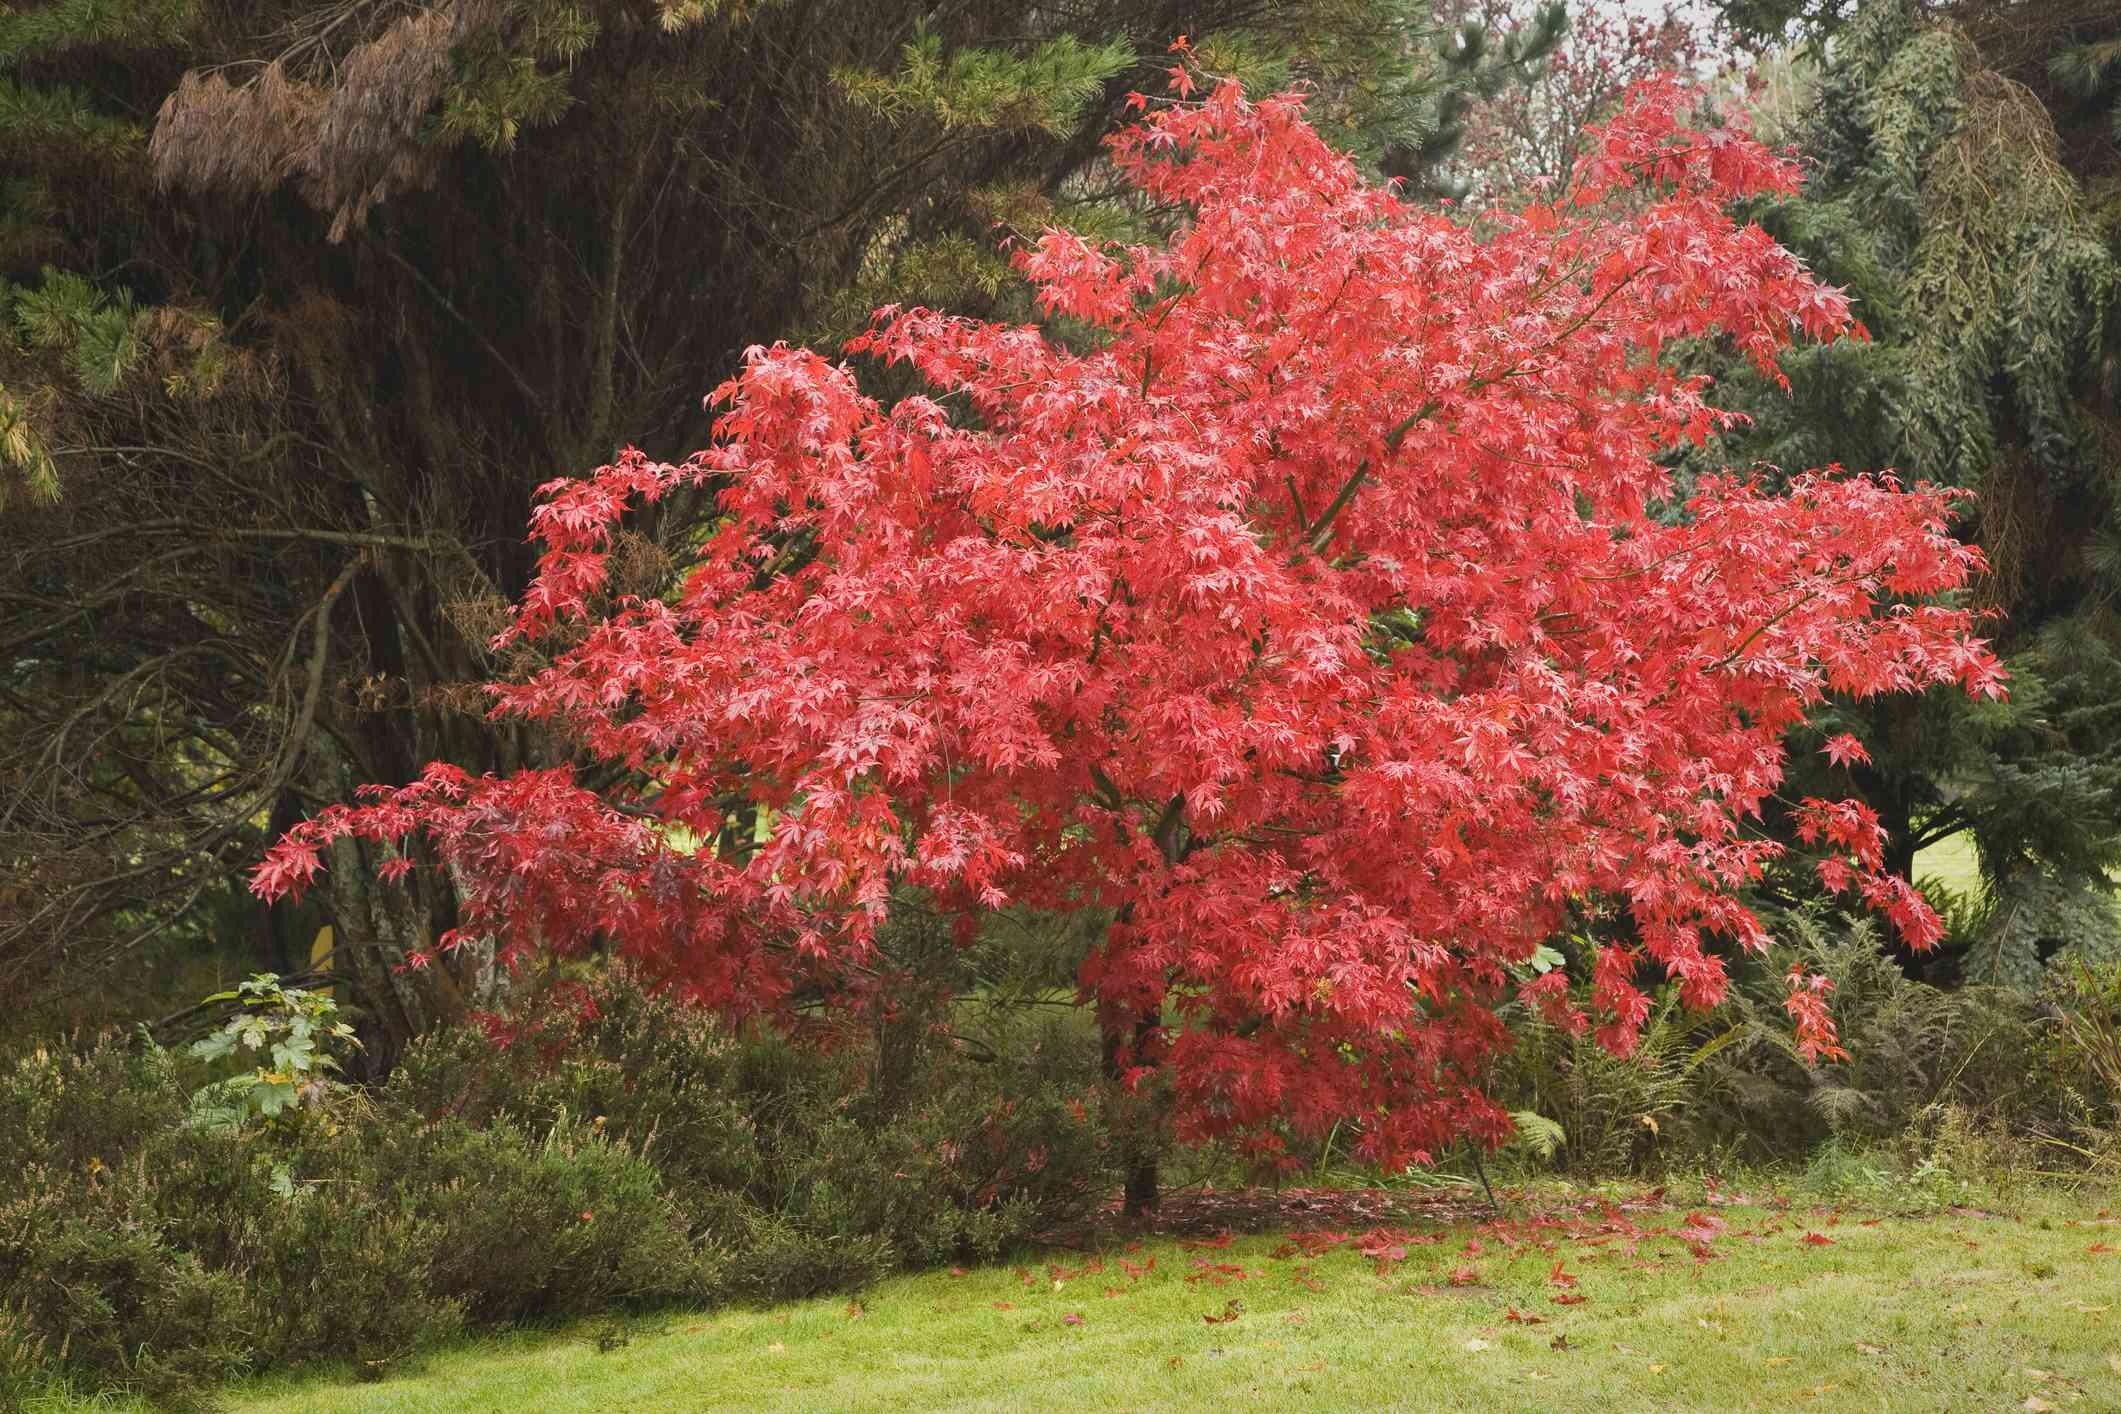 Japanese maple with red leaves at the edge of a lawn.